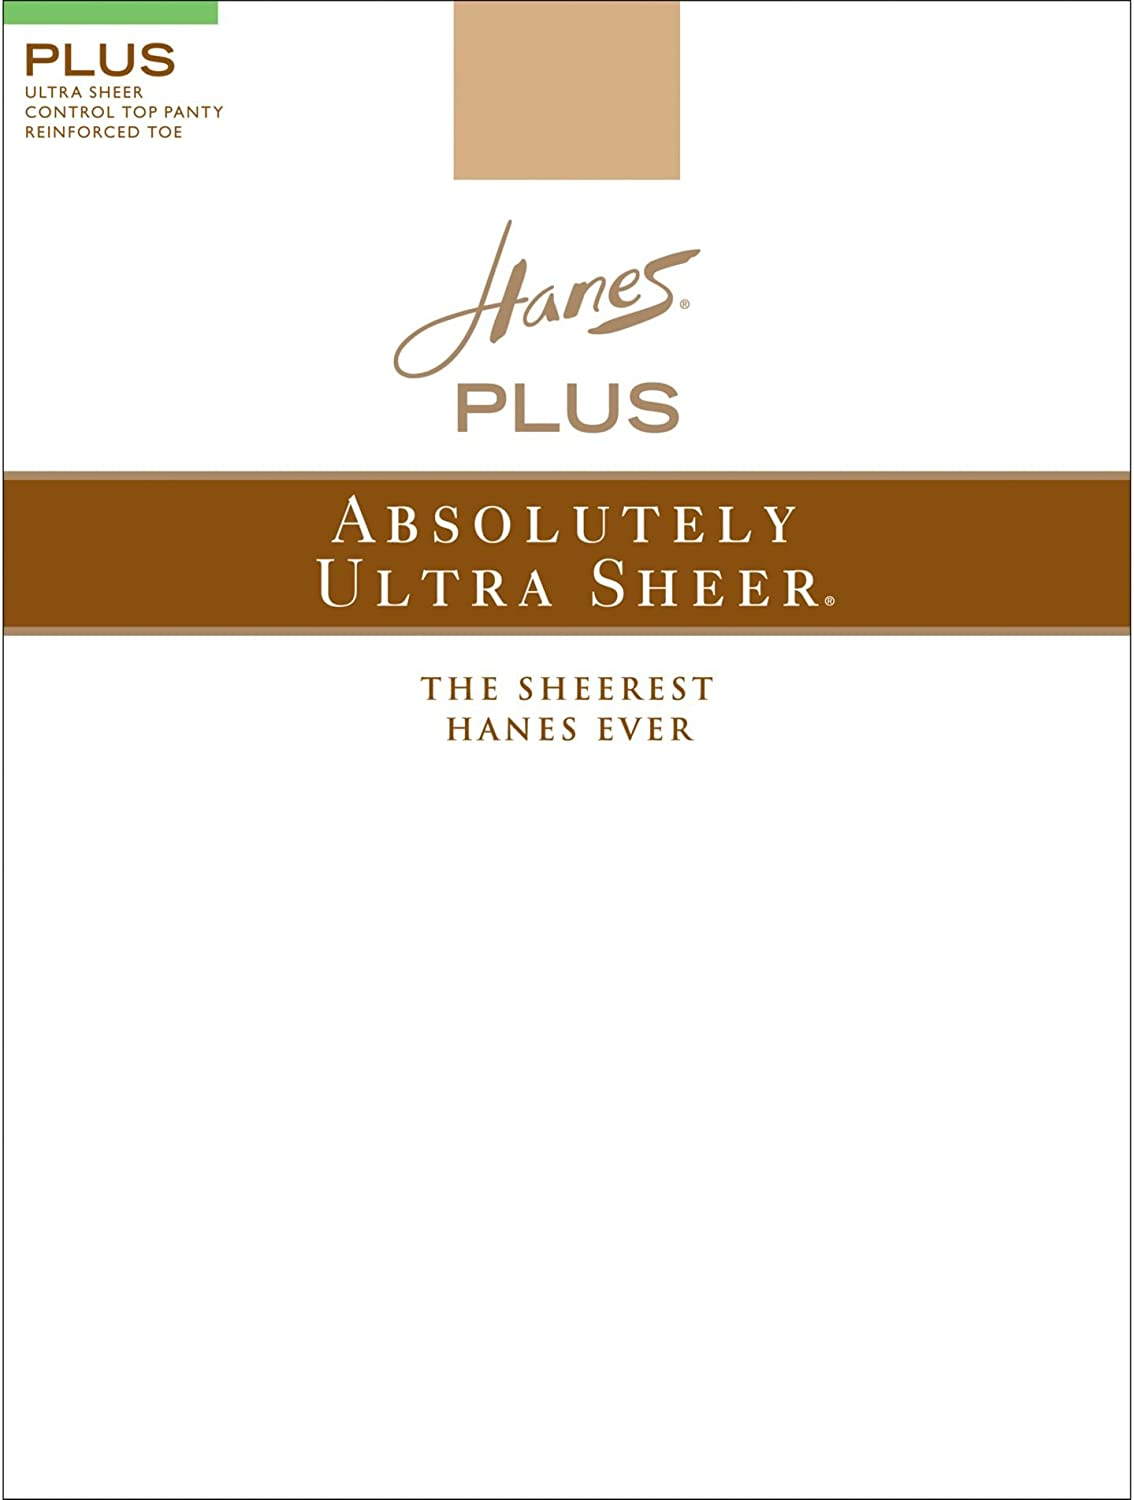 Hanes 00P30 Plus ABsolutely Ultra Sheer Control Top44; Reinforced Toe Pantyhose Size 1P44; Barely Black